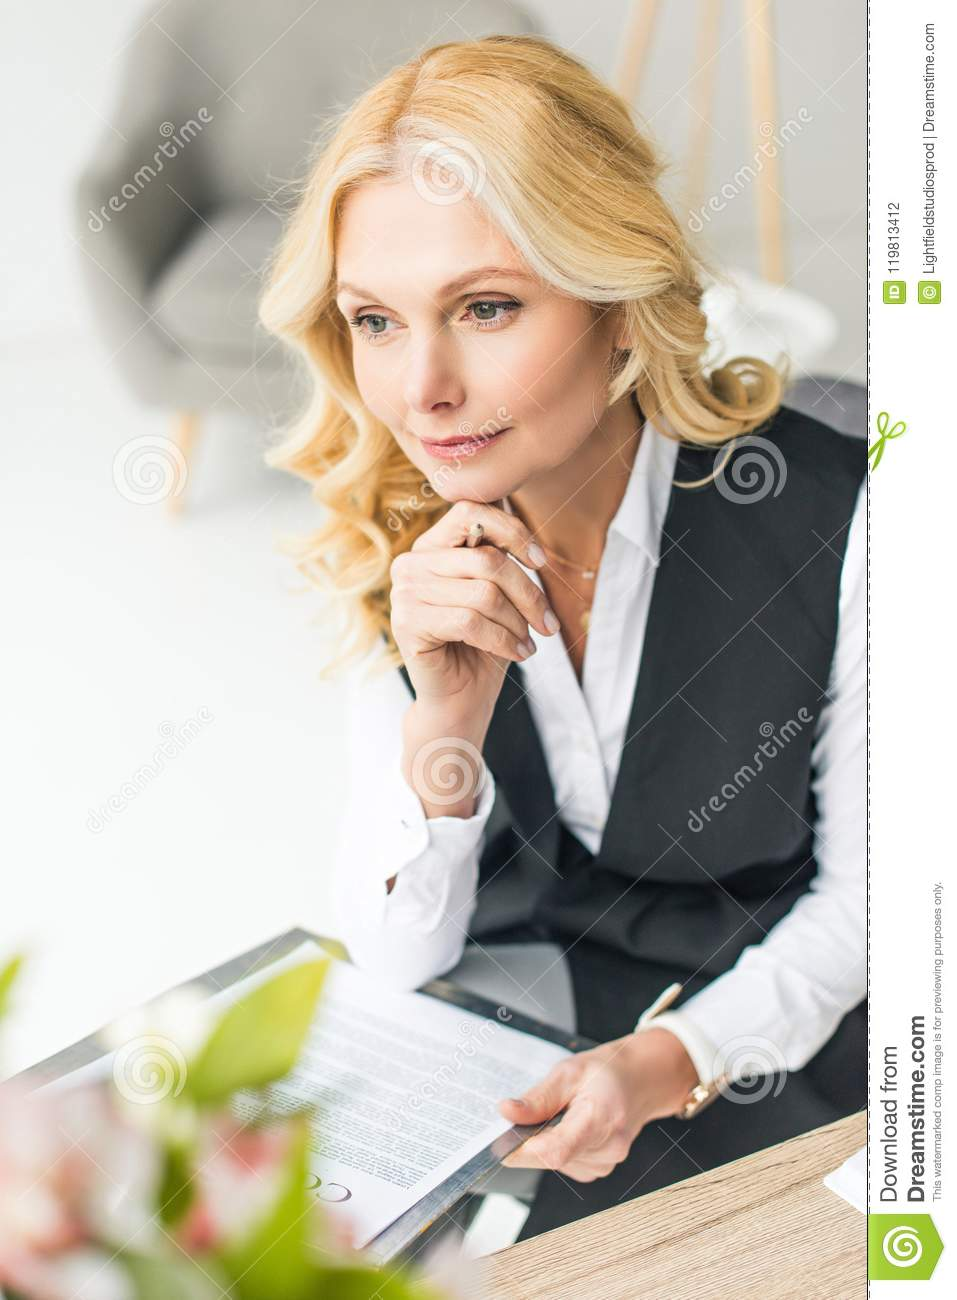 smiling focused businesswoman holding pen with contract and looking away